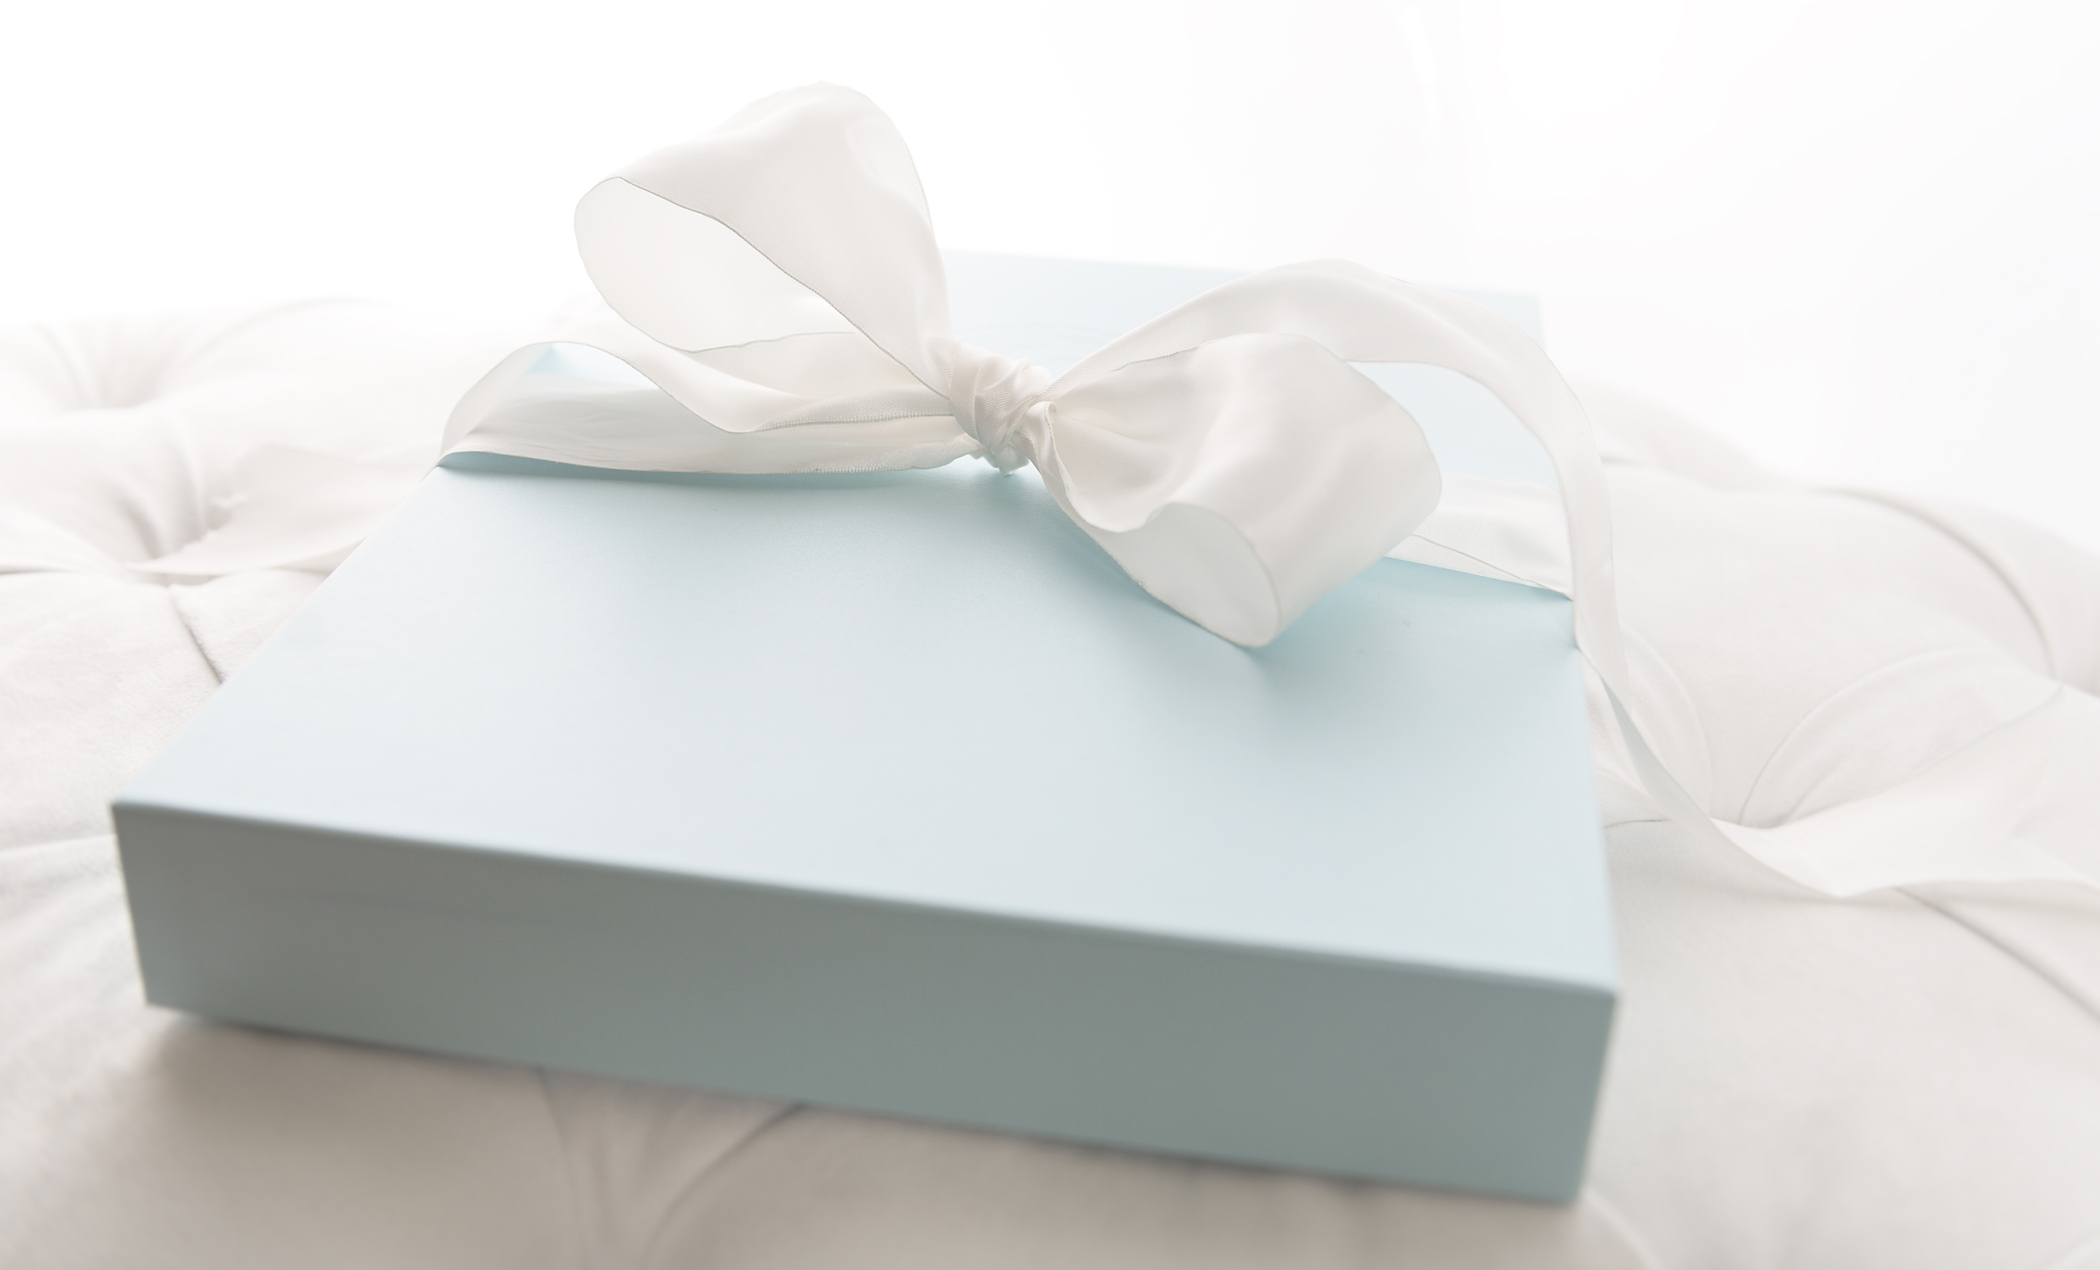 Our beautifully boxed, 11 x 14 matted, 8x10 print product.